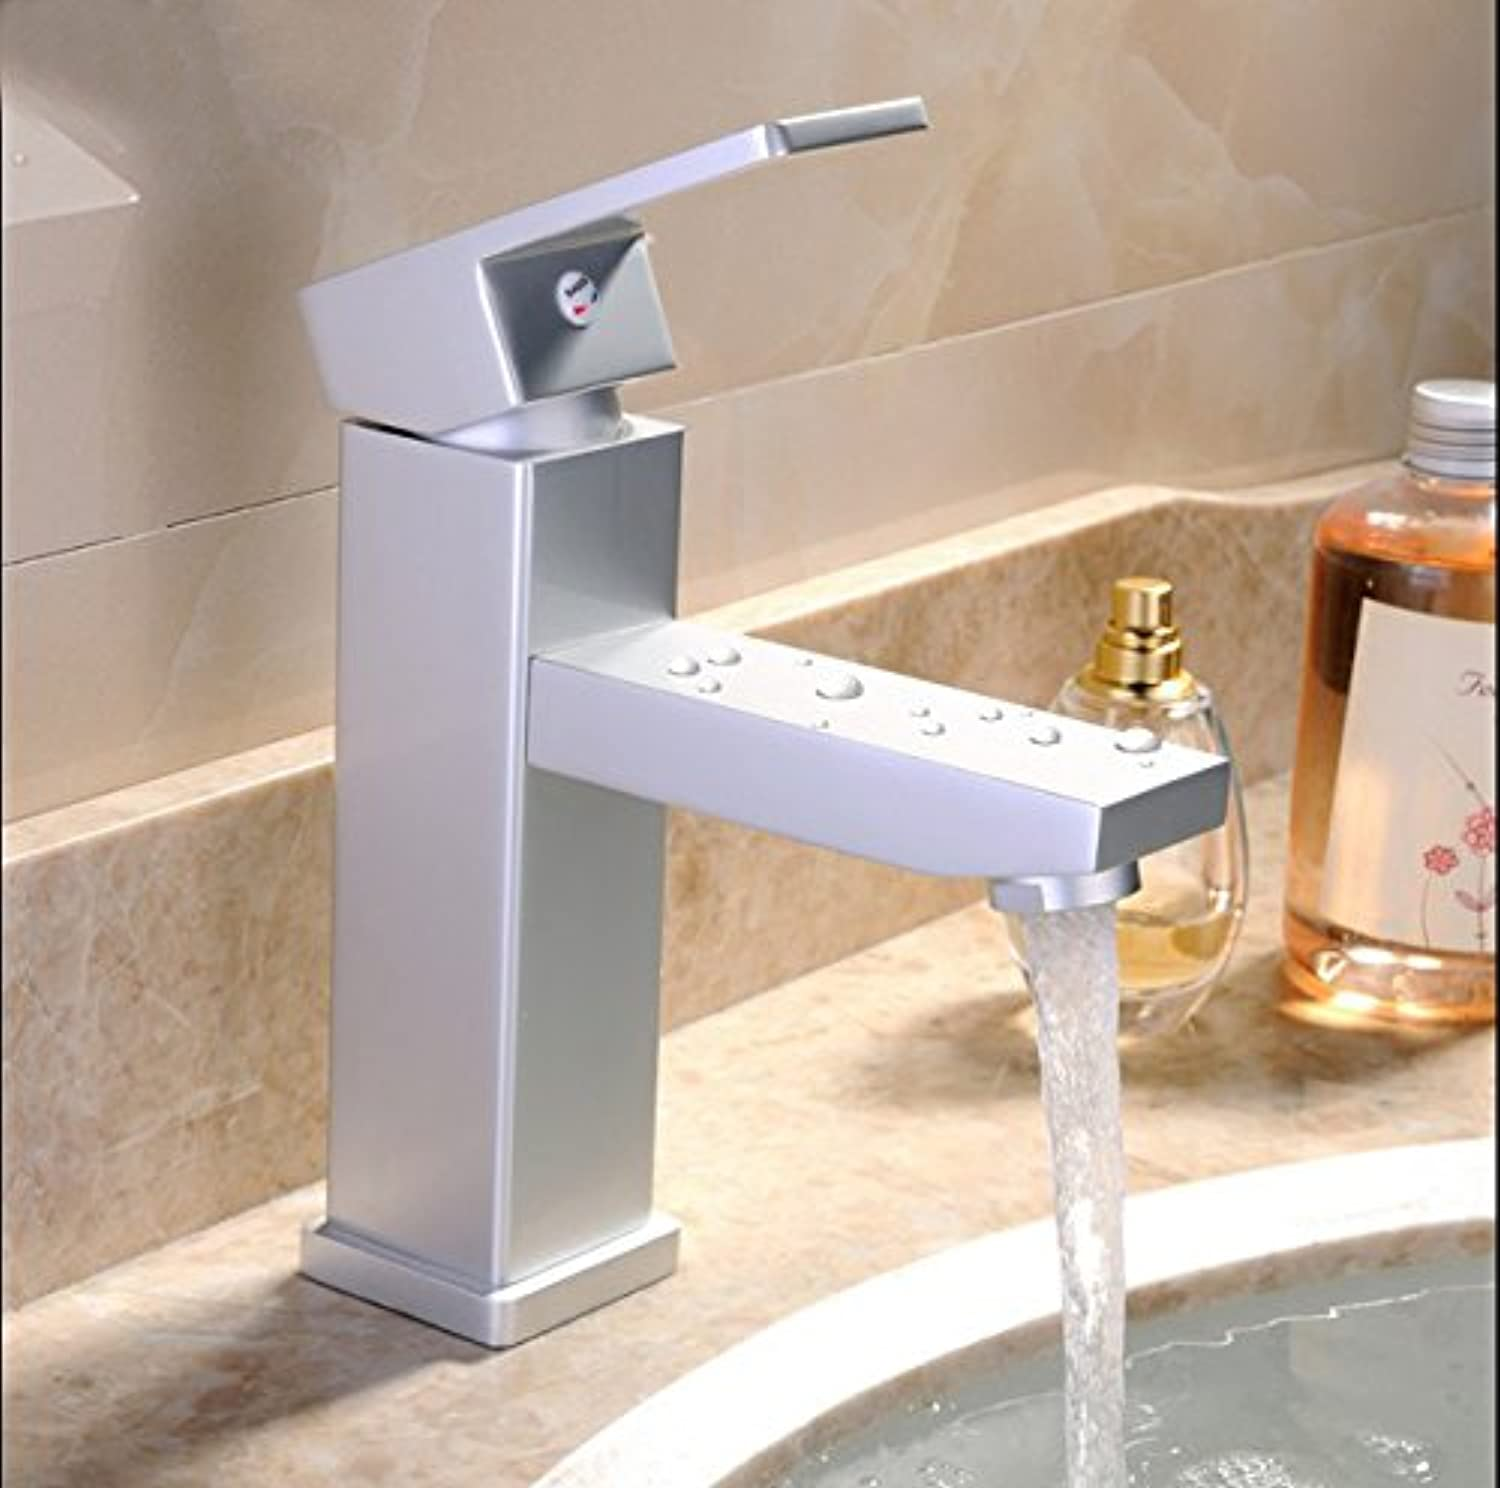 LHbox Basin Mixer Tap Bathroom Sink Faucet The sink faucet and cold water faucet space aluminum faucet basin Mixer Taps